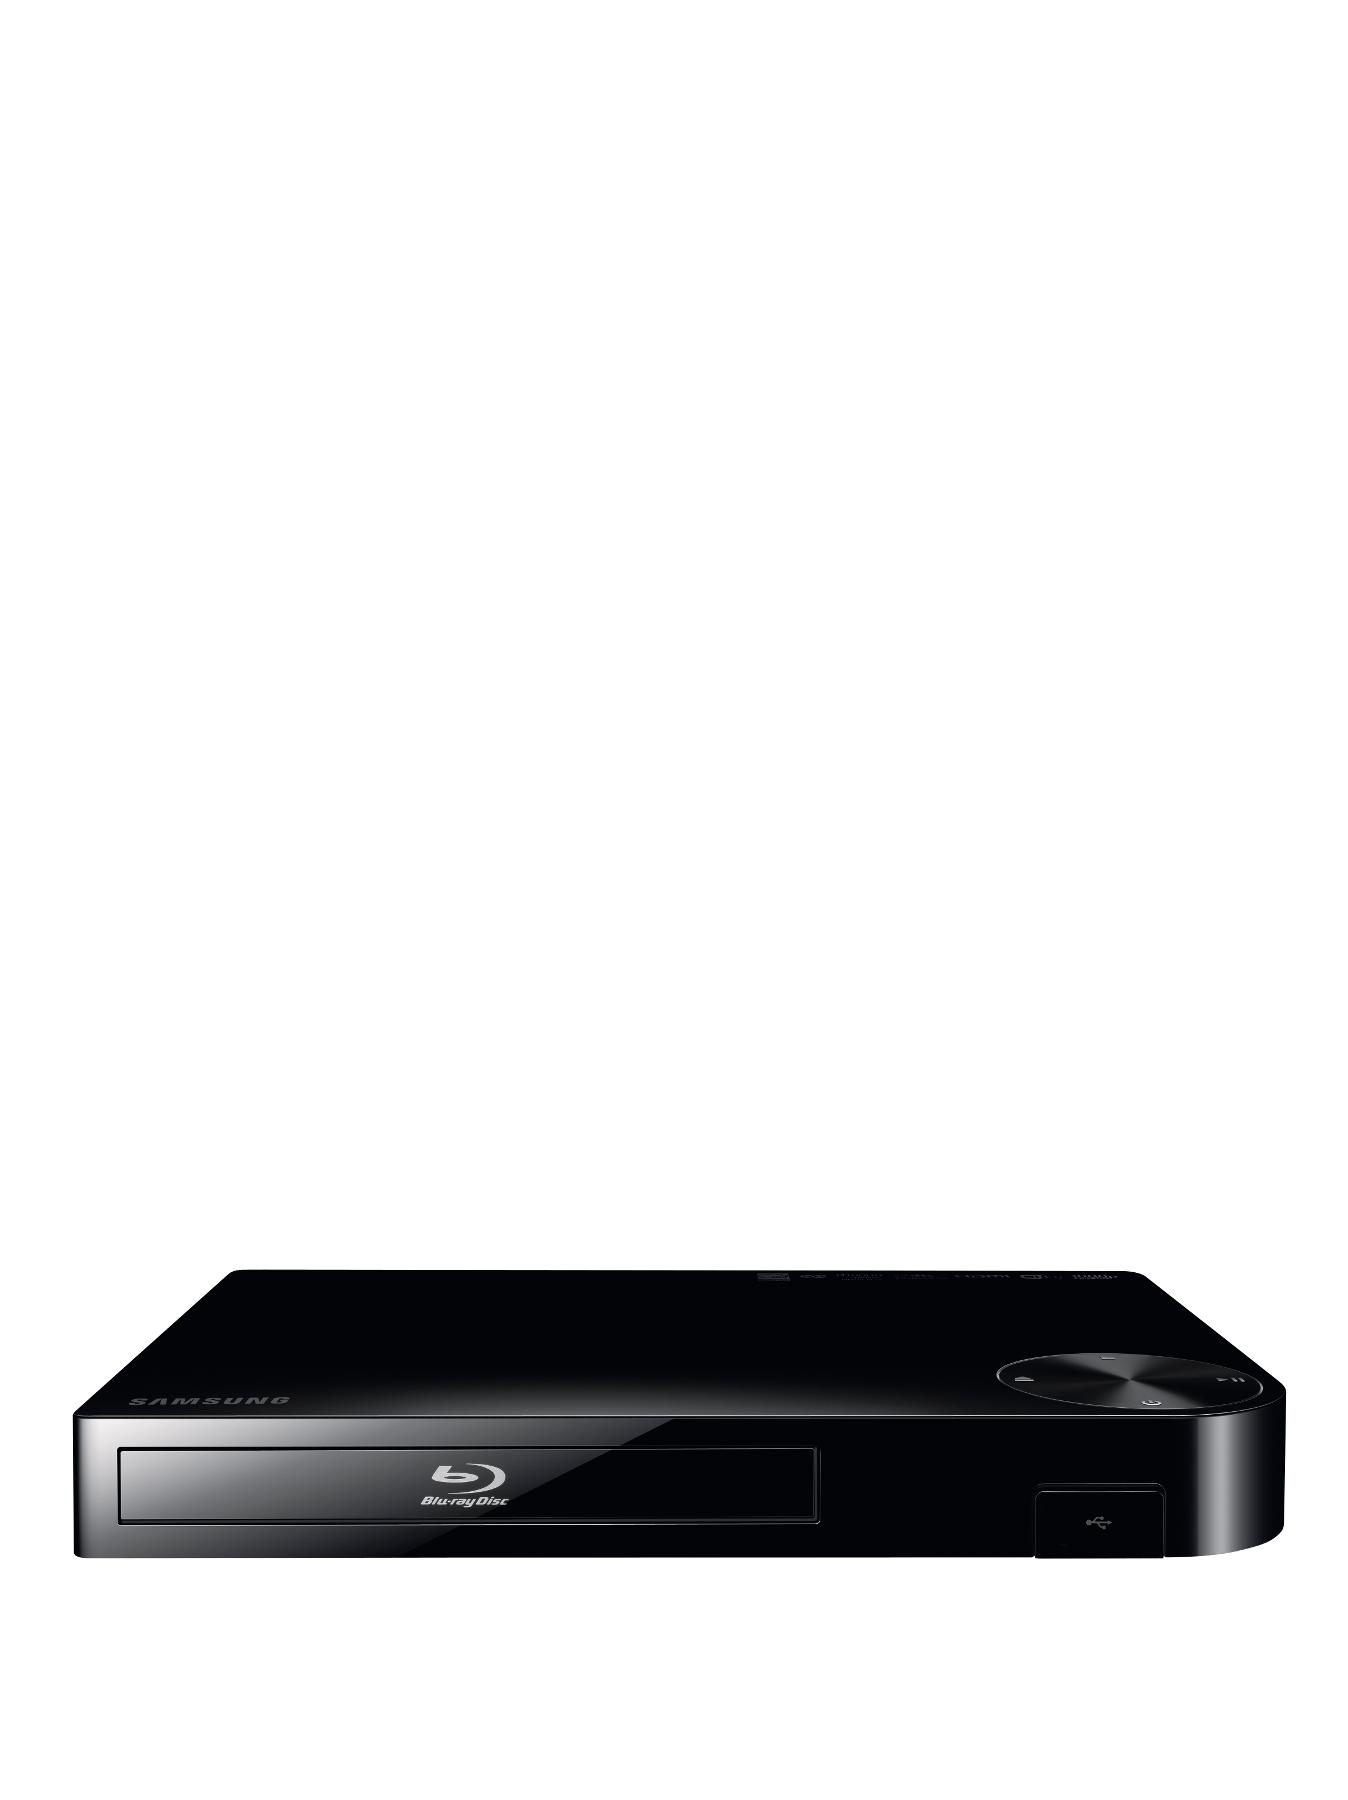 Samsung BD-F5100 Smart Blu-ray Player